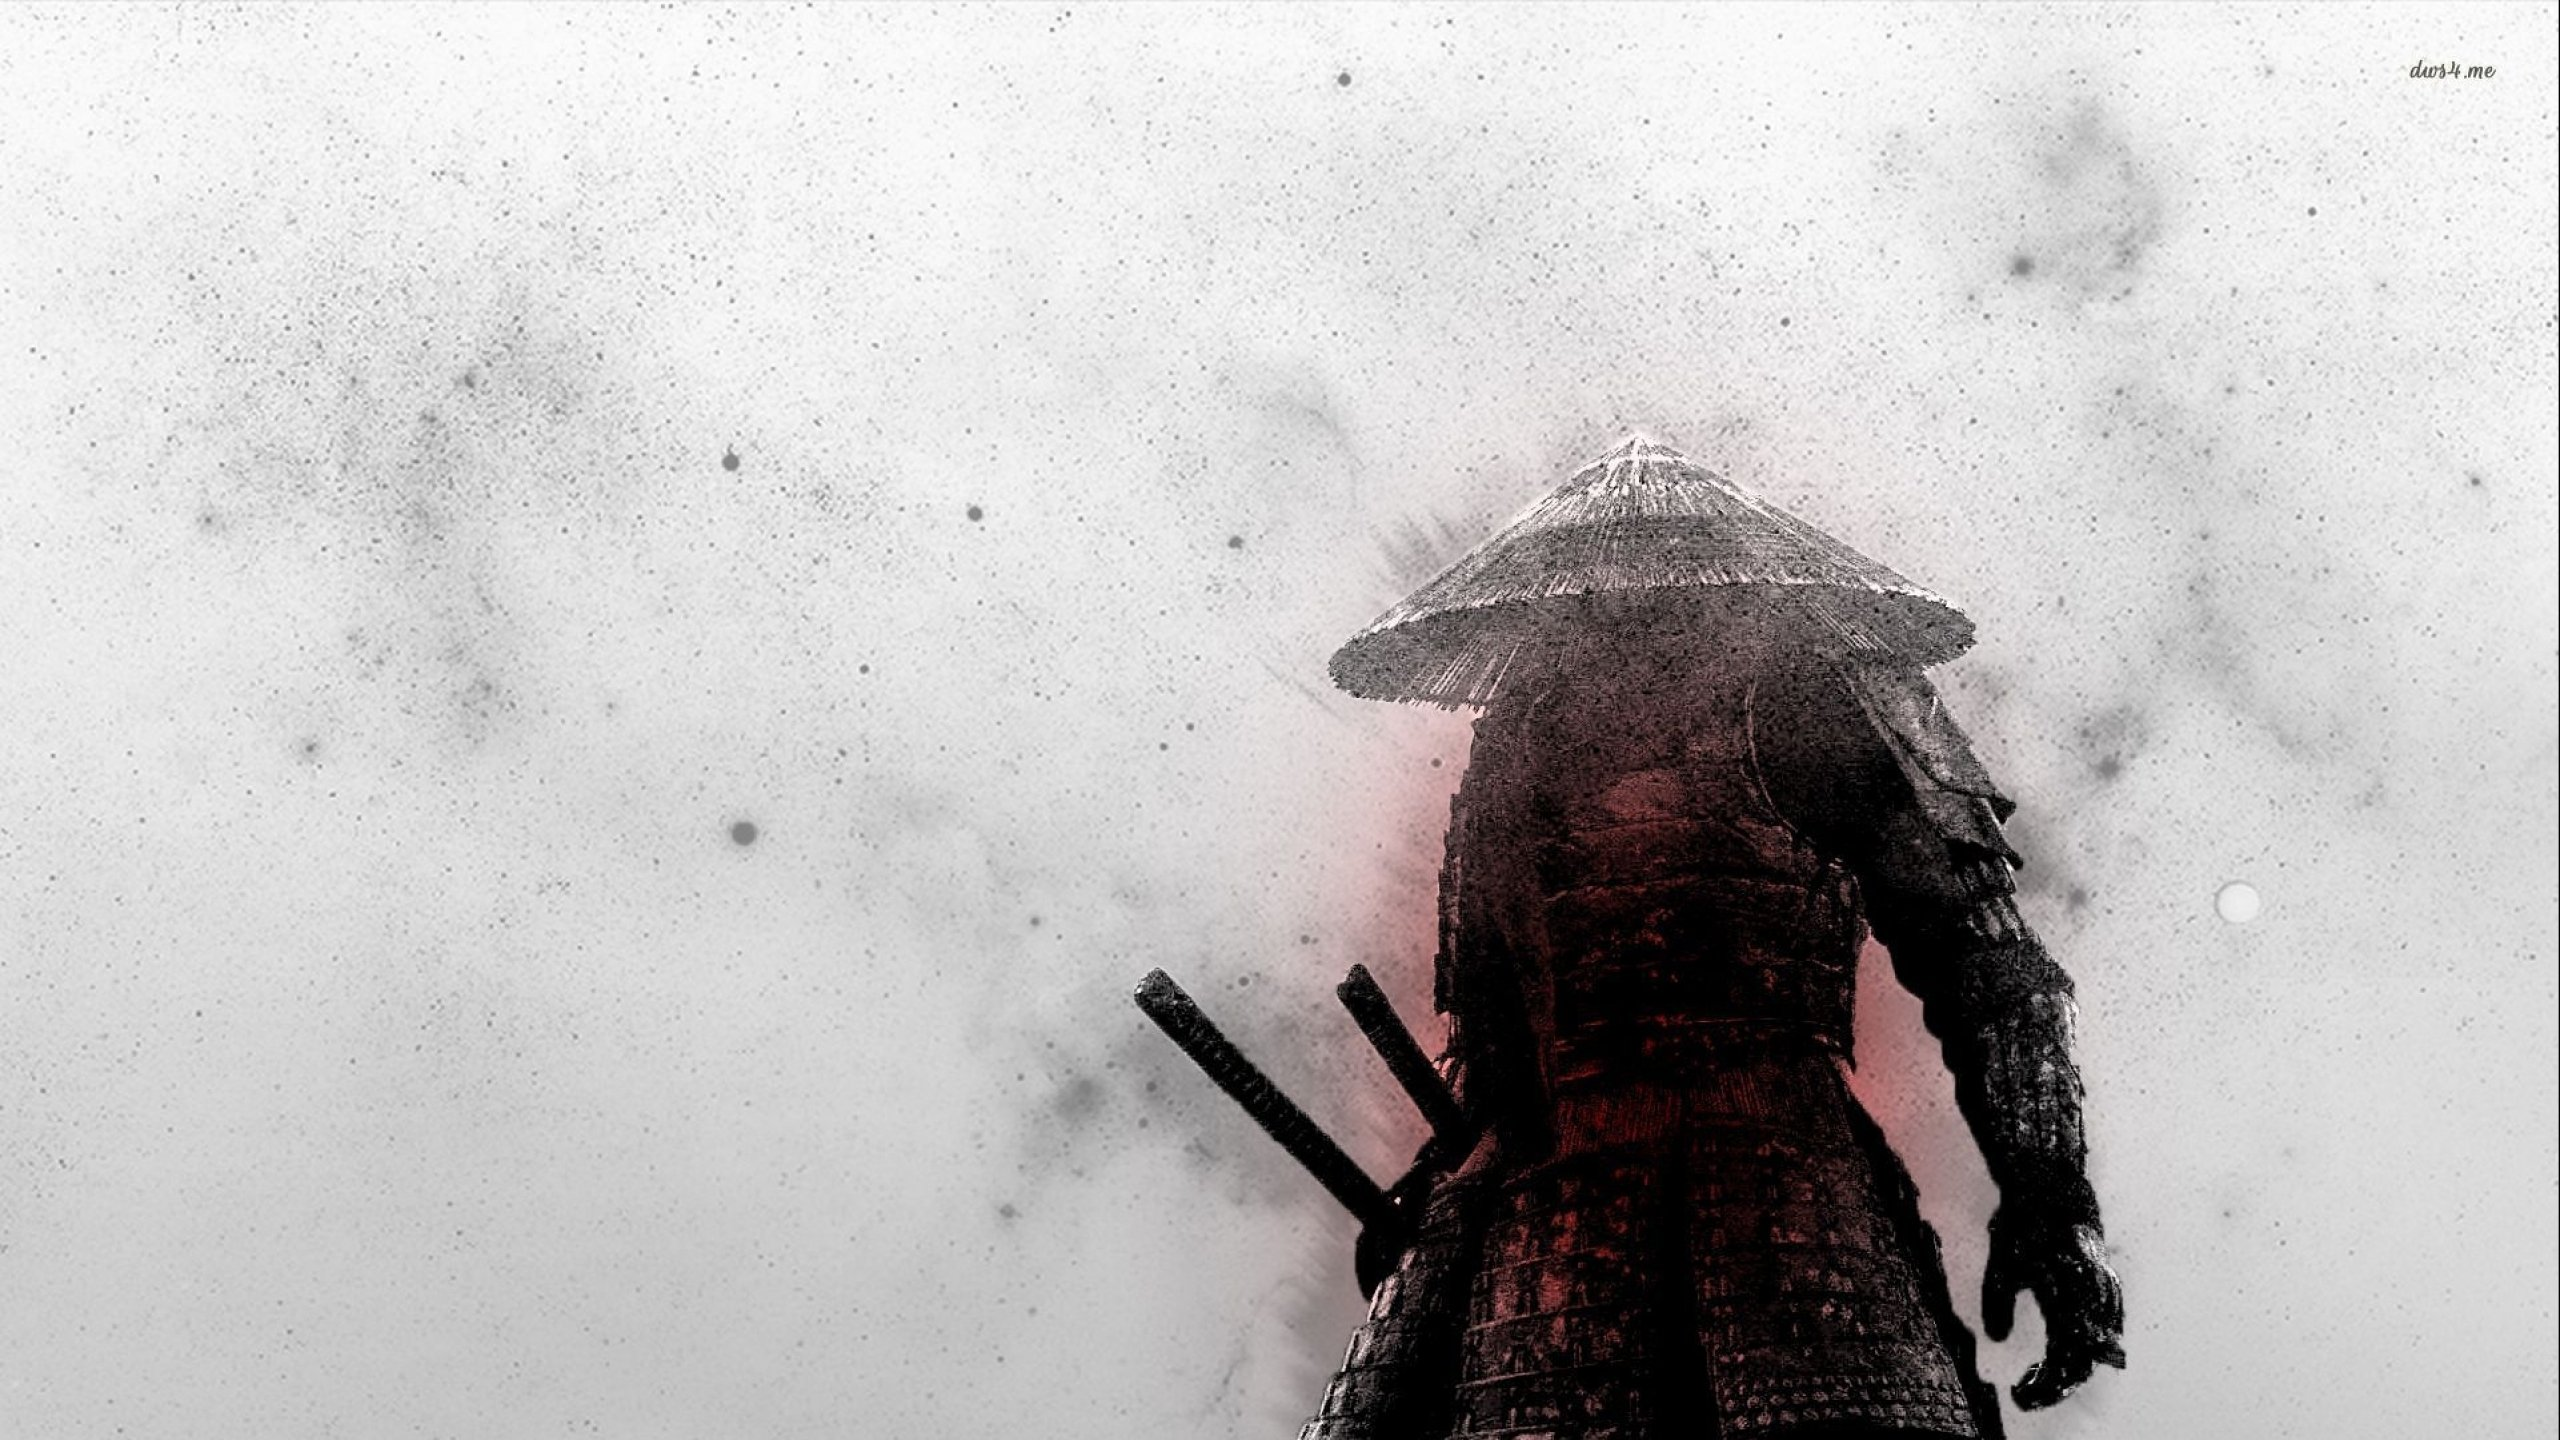 Samurai Warrior Fantasy Art Artwork Asian Wallpaper